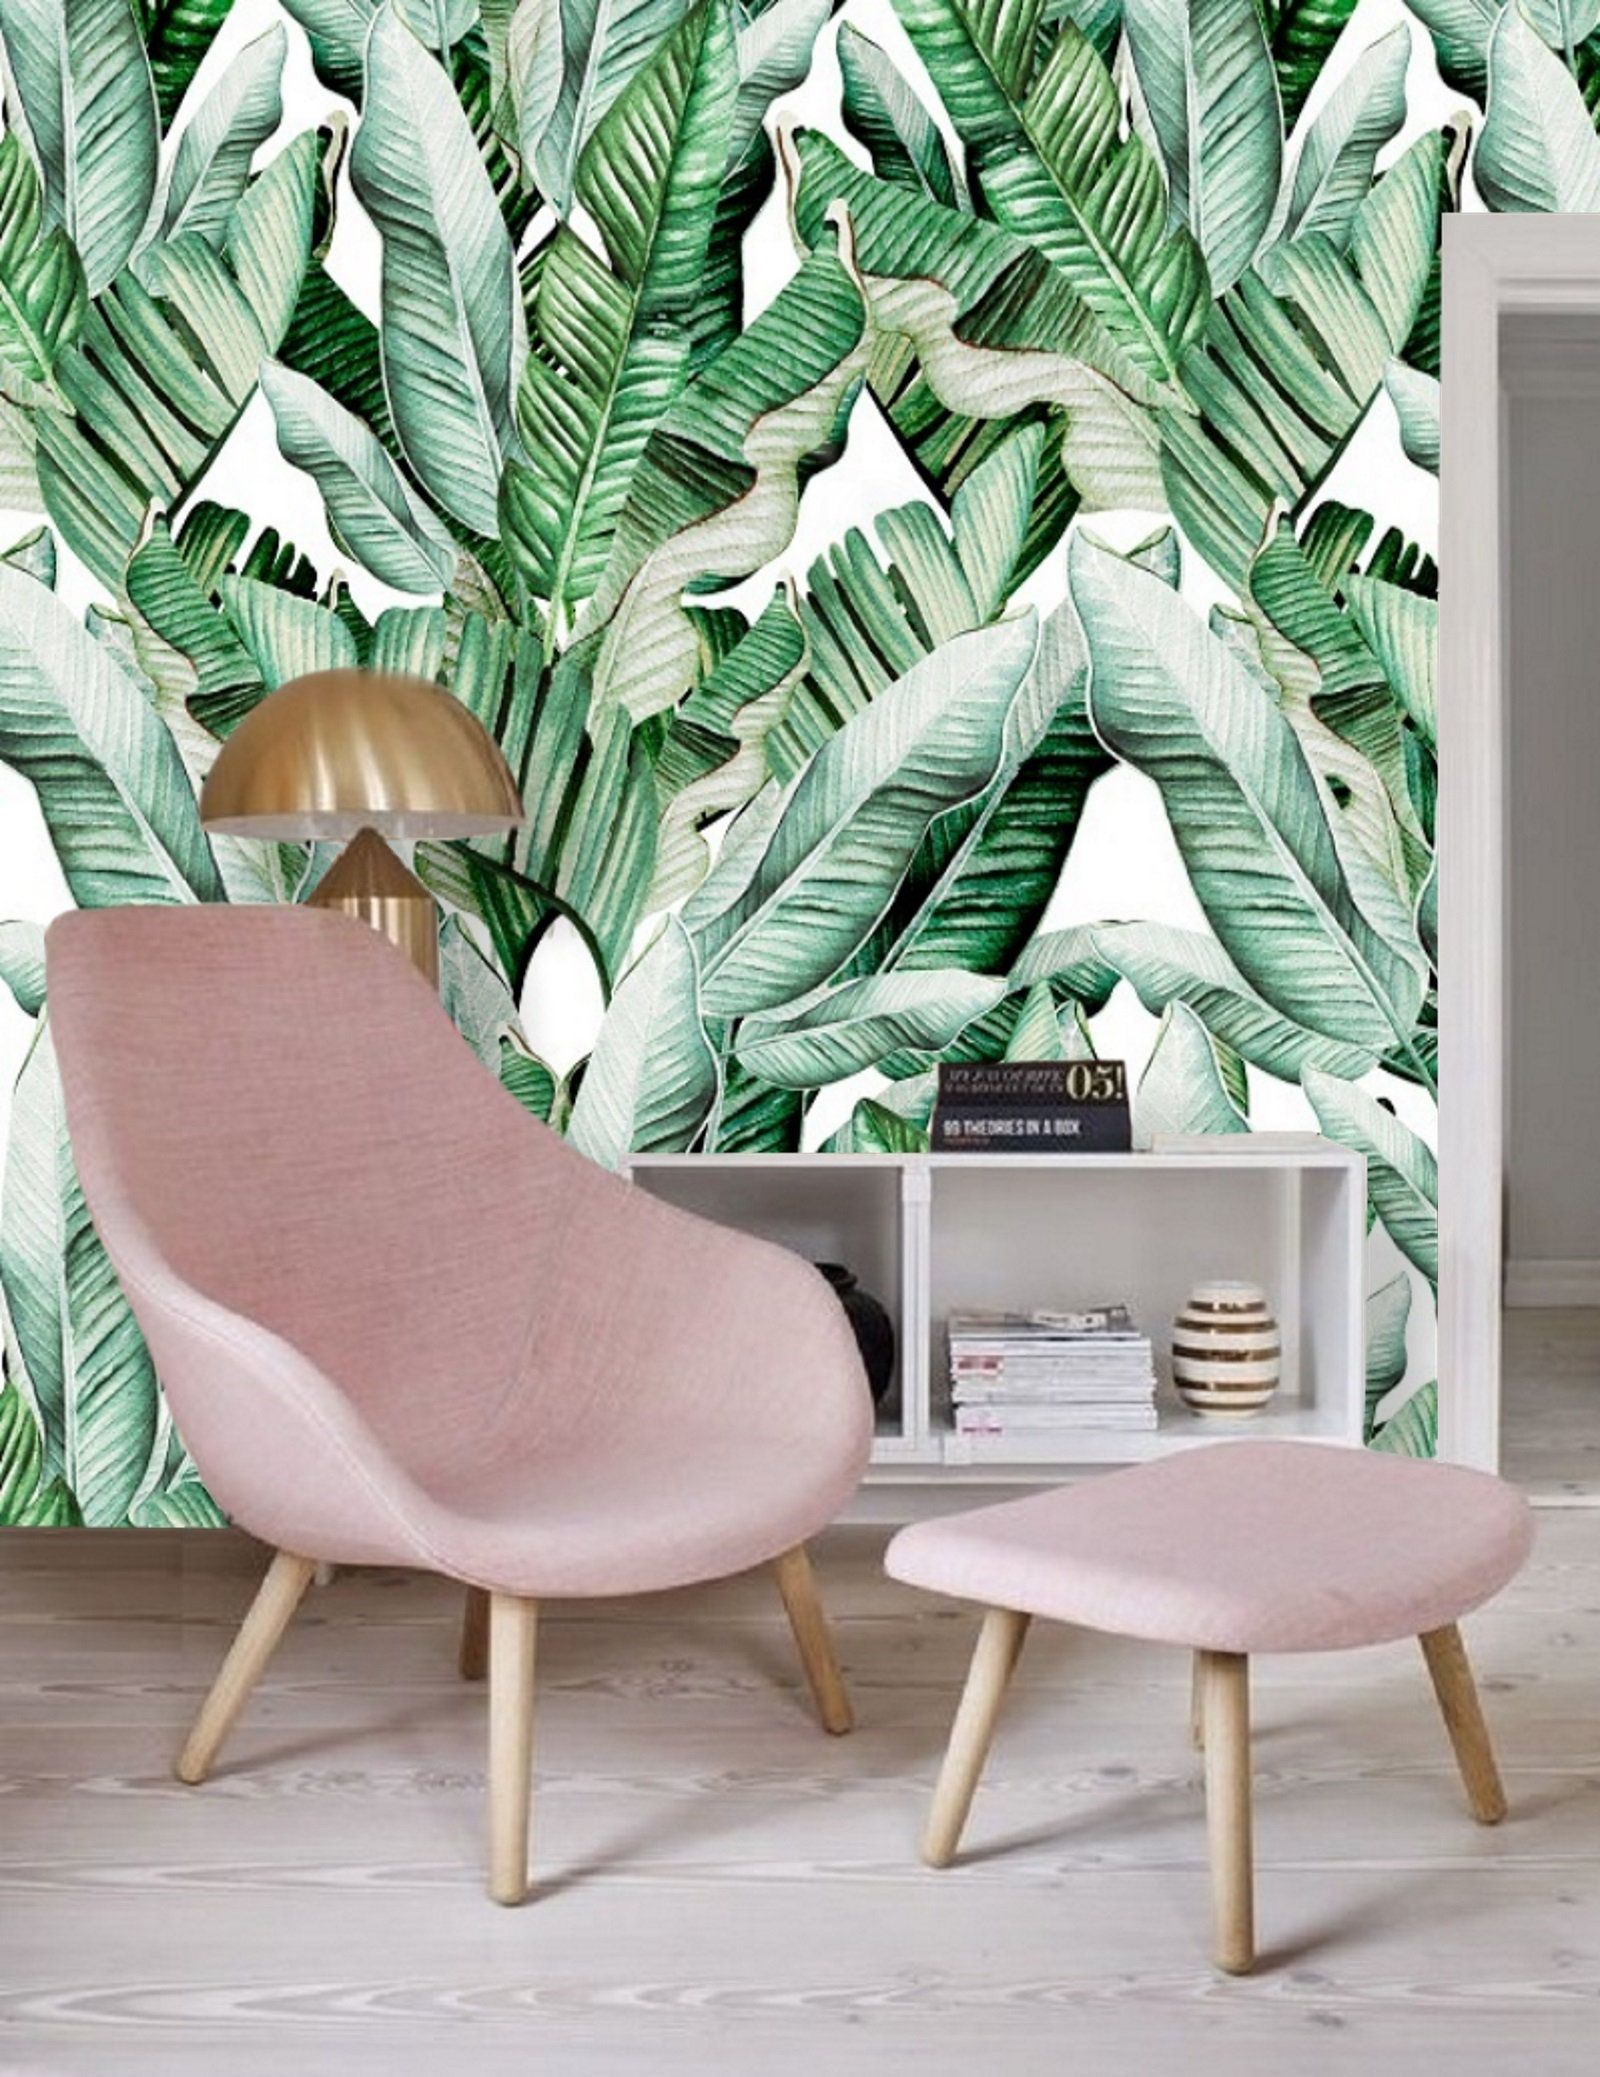 Watercolor Green Banana Leaf Removable Wallpaper Peel and